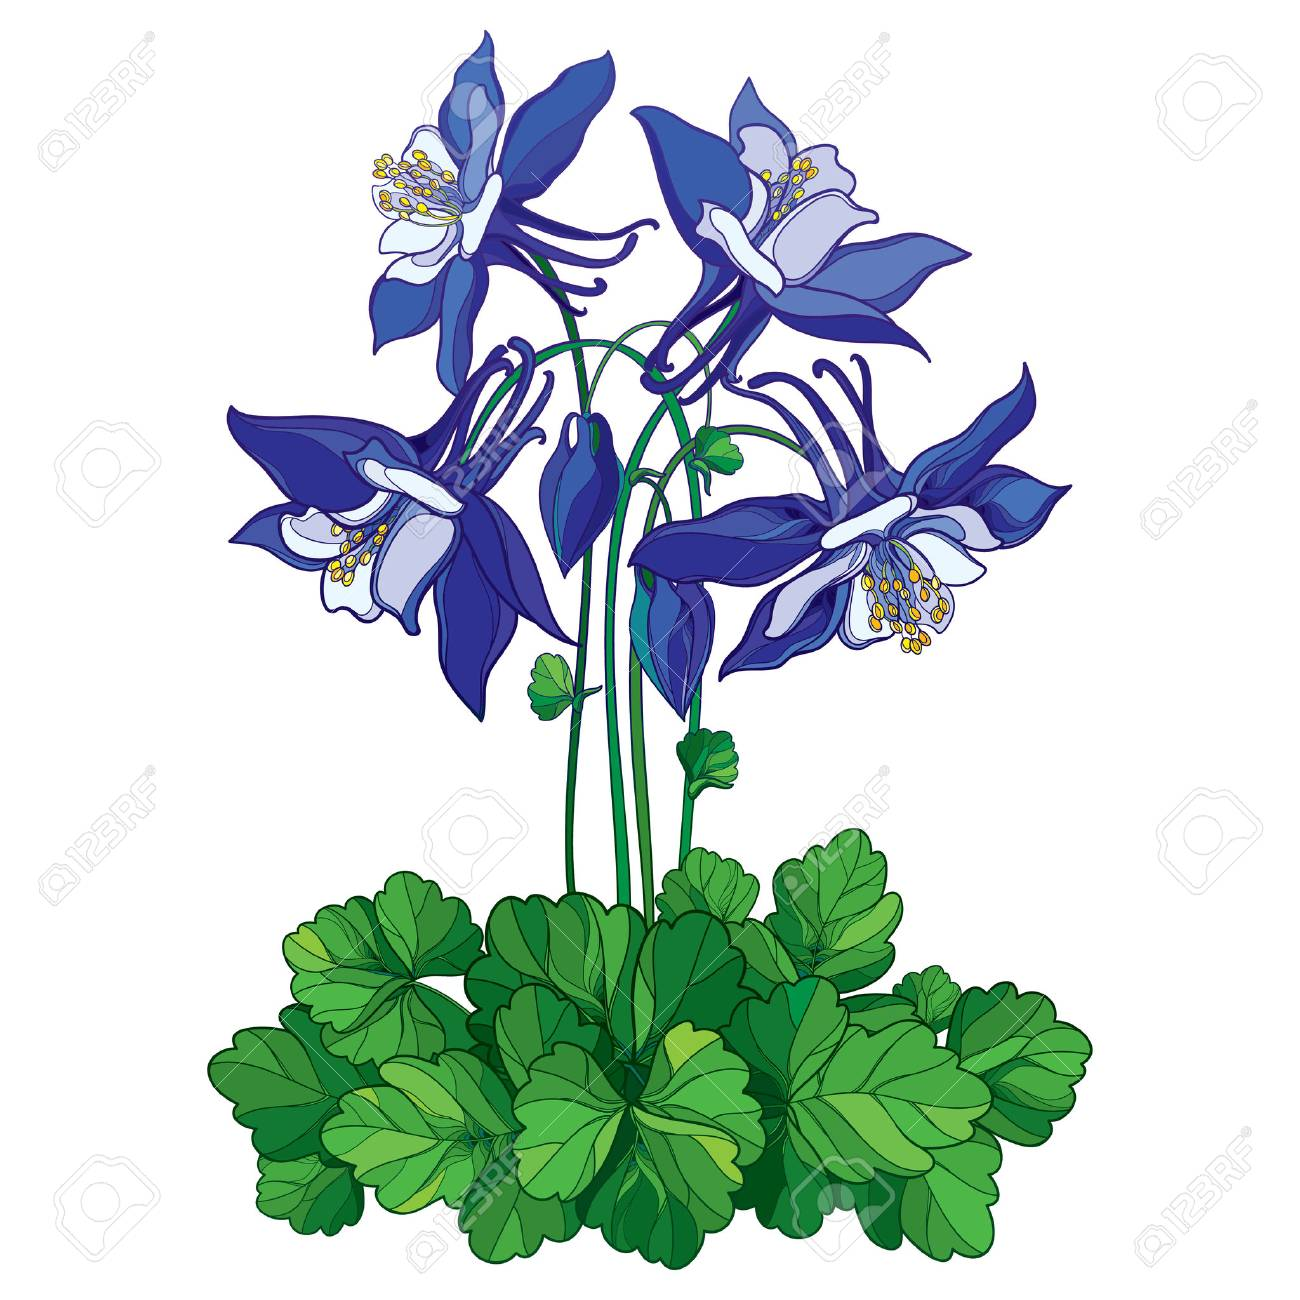 Bouquet With Outline Ornate Aquilegia Or Columbine Flower In